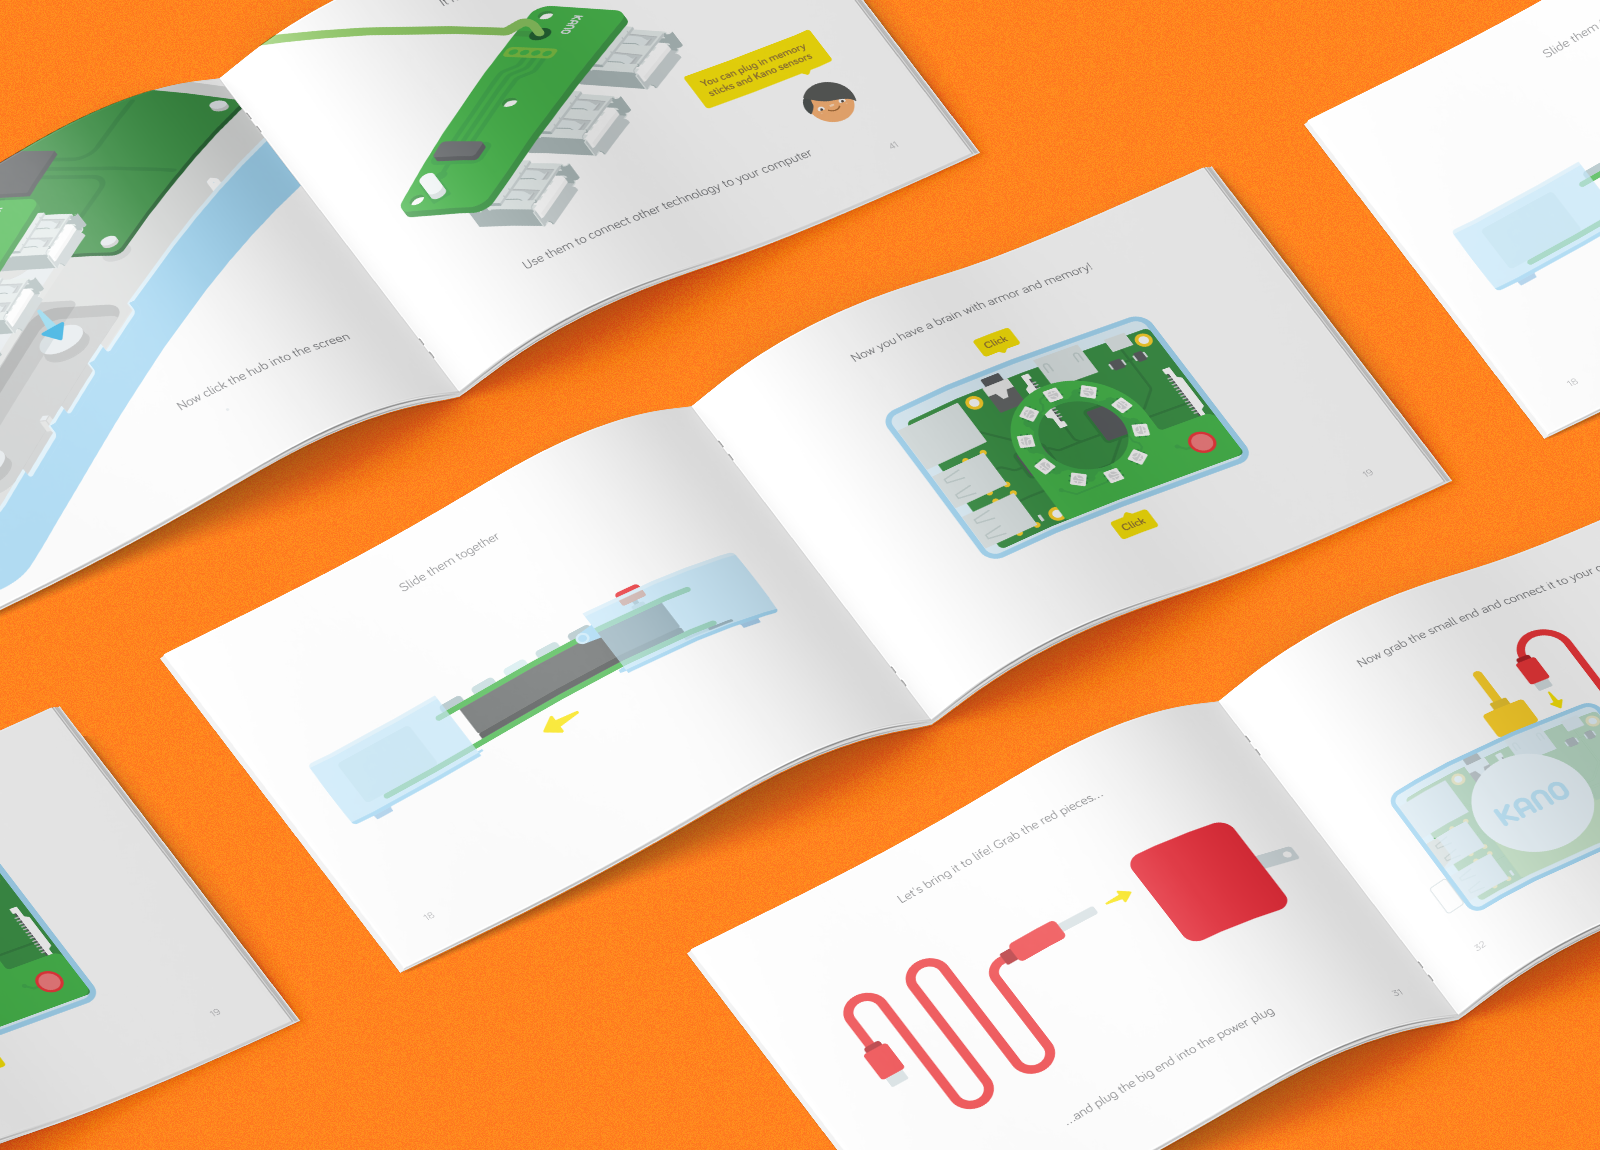 Kano Storybooks - I've designed, illustrated, written several editions of Kano's storybook together with the amazing team at Kano. Each coding kit comes with a booklet to demystify the device you're about to make and code.See more →